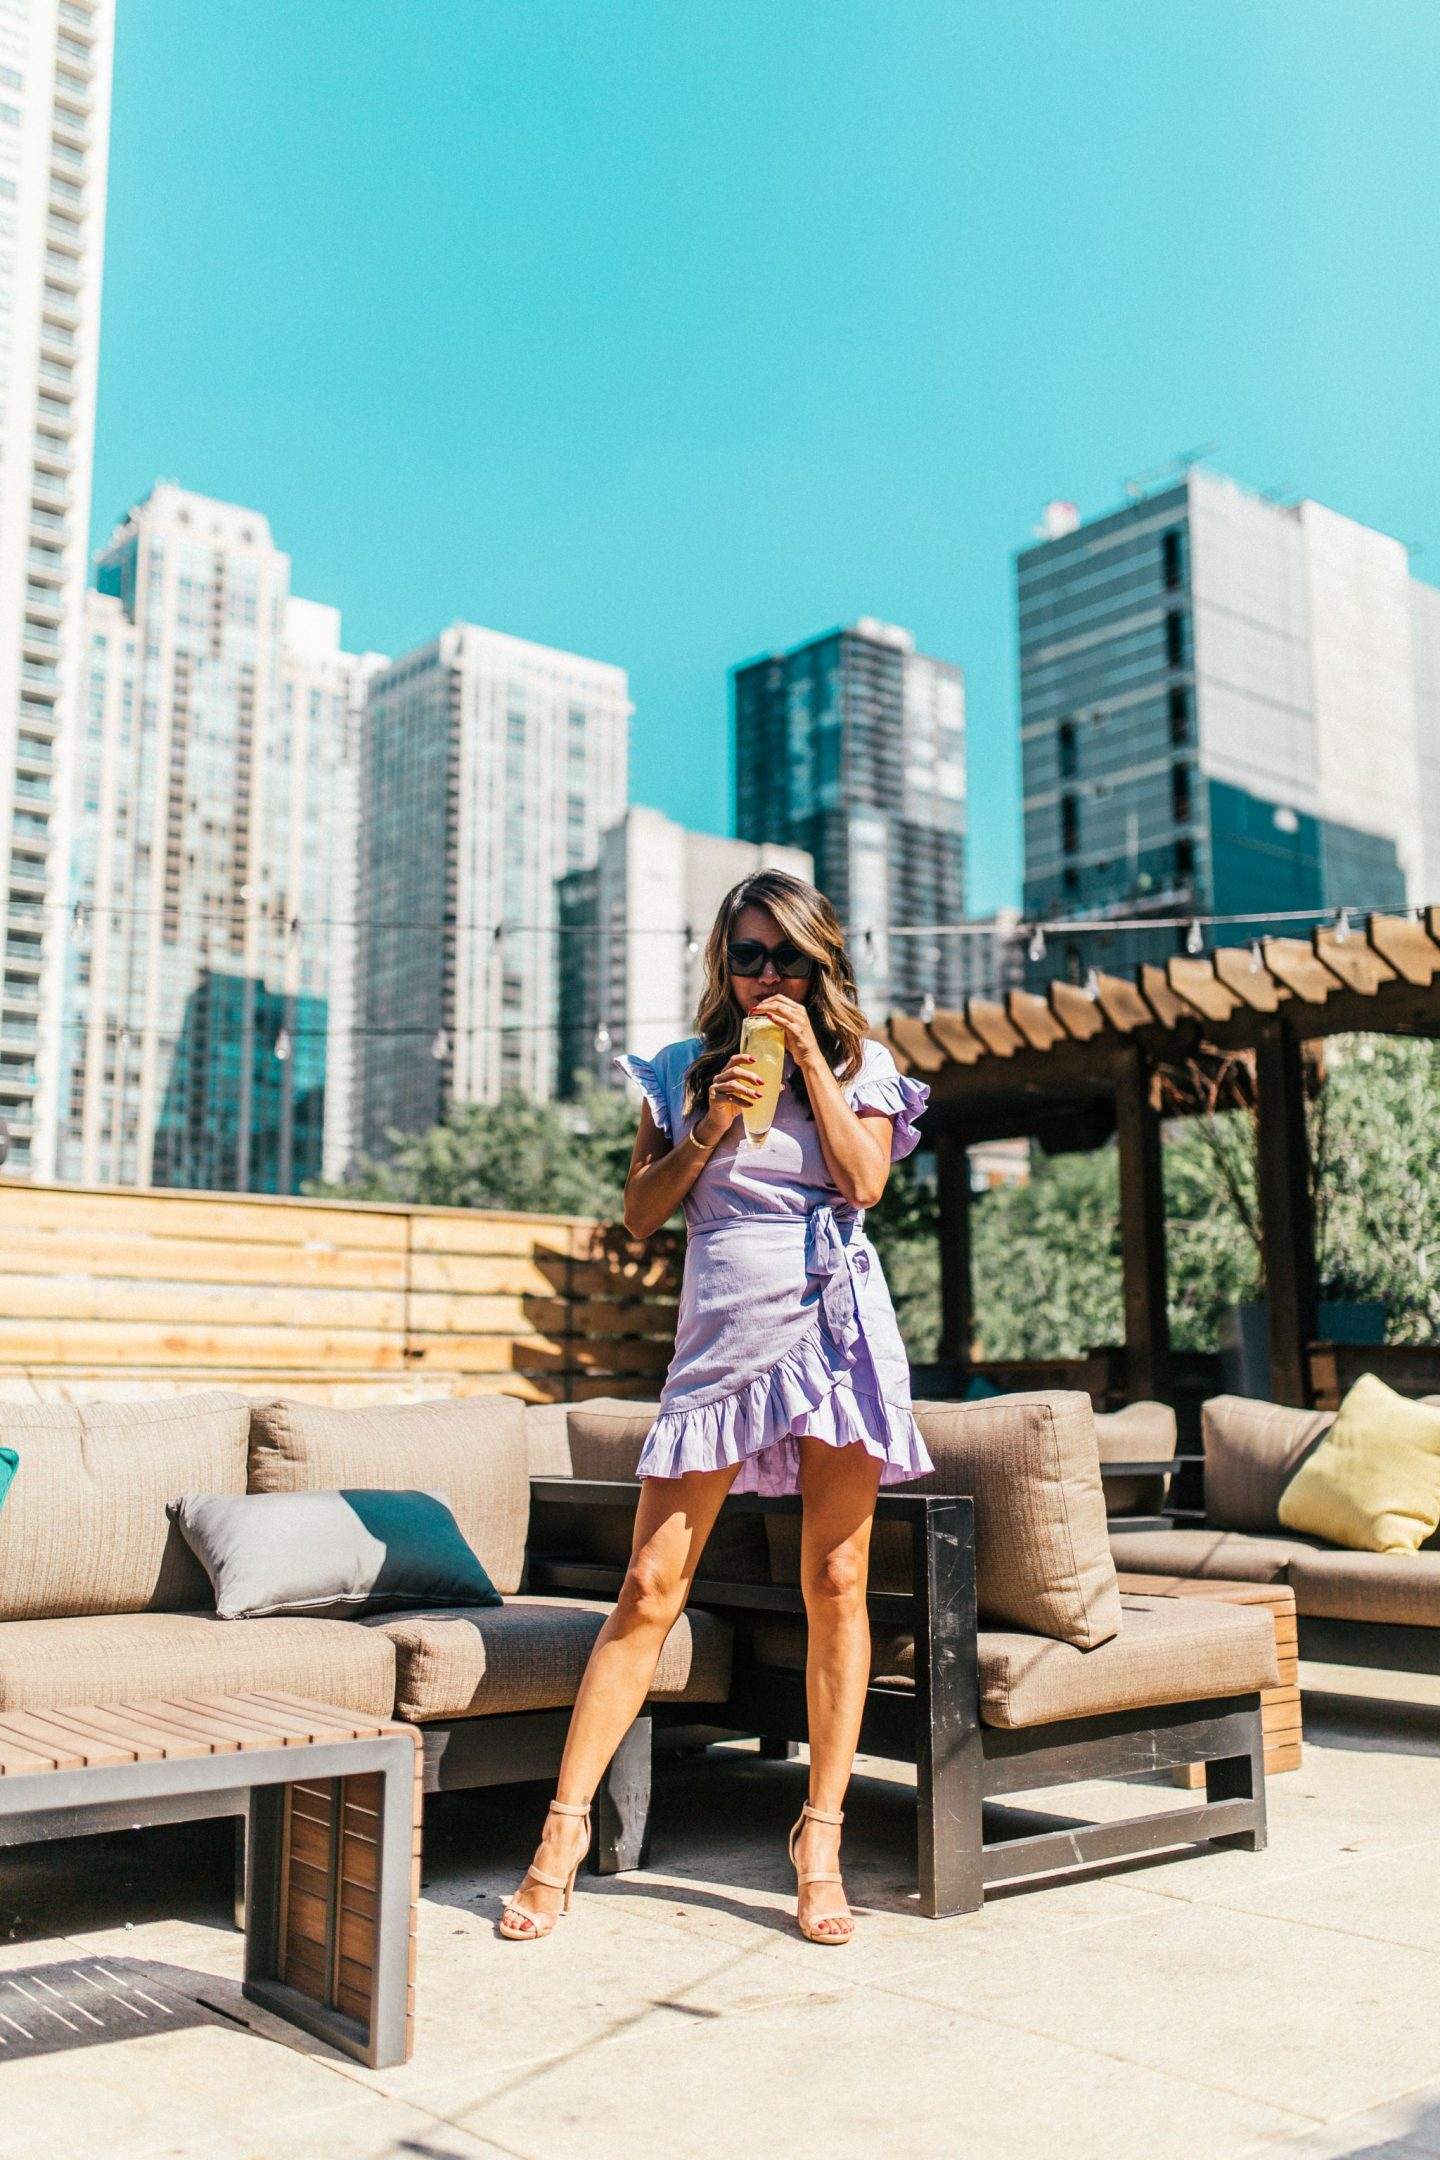 Zed451 Rooftop, Best Chicago Rooftop Bars, Best Bars in Chicago, Jennifer Worman